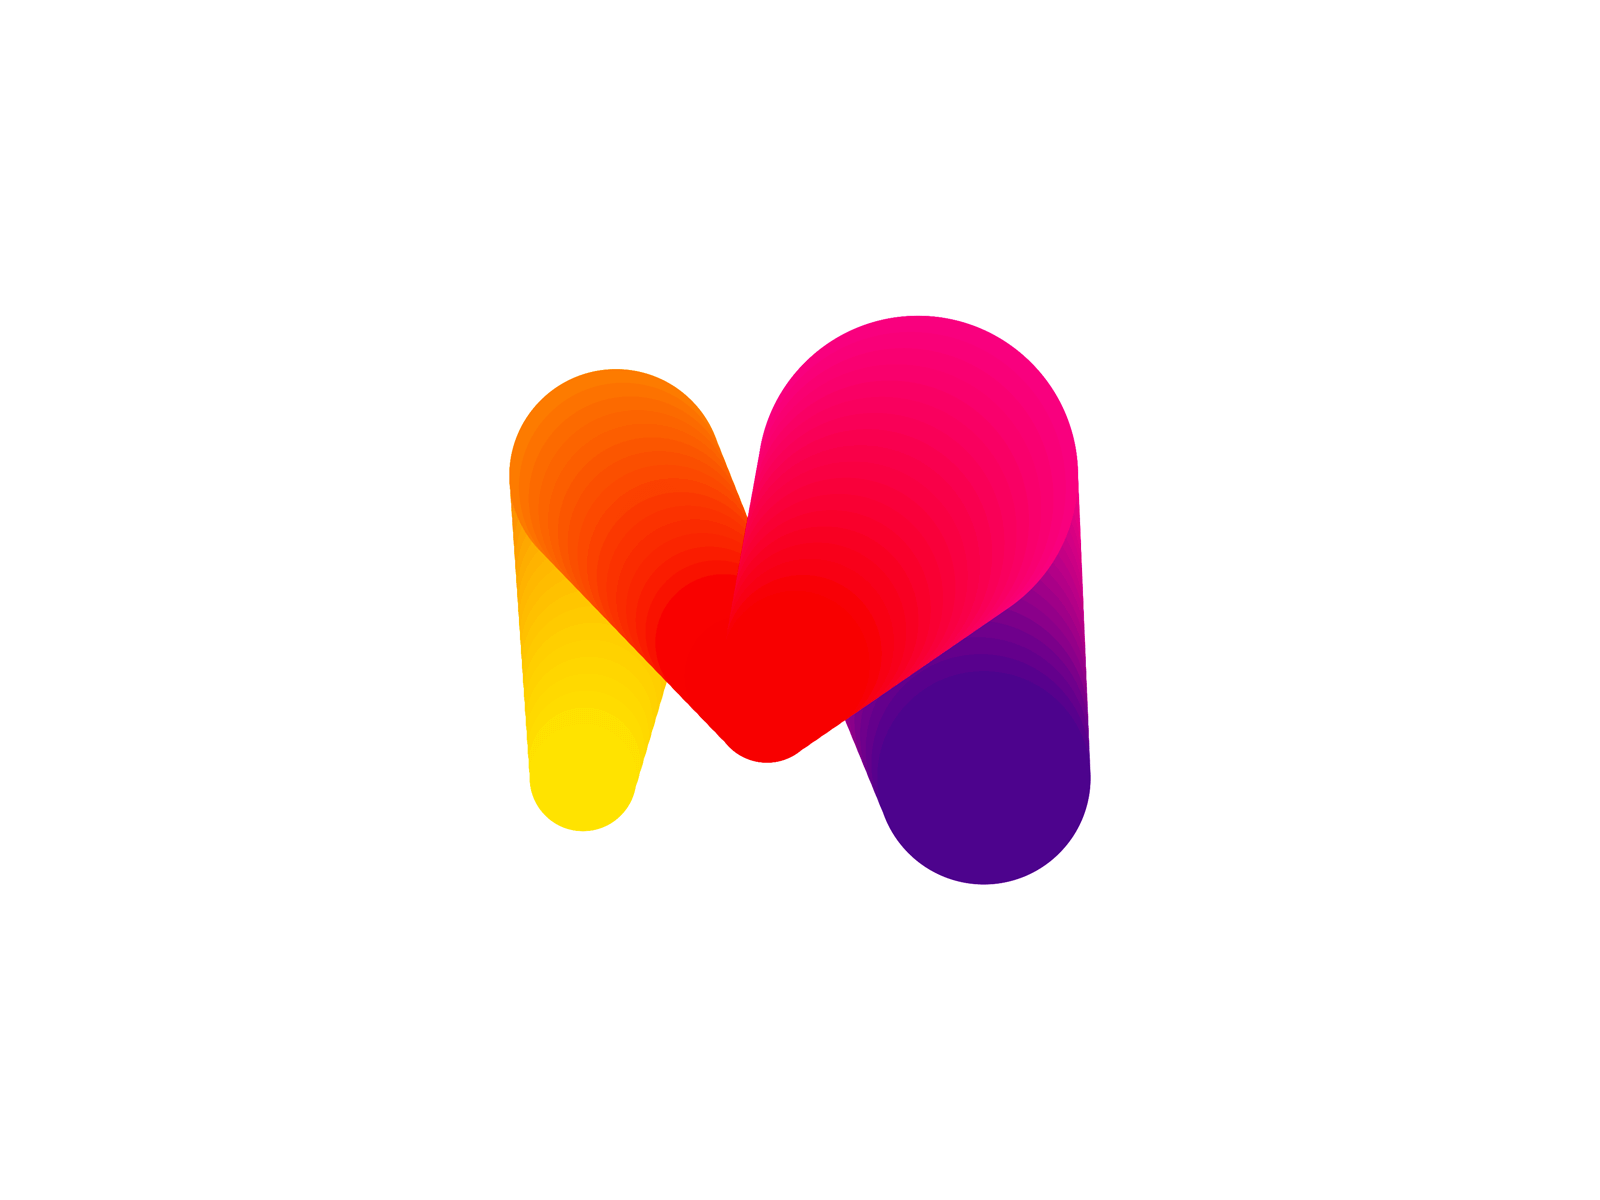 My Love Heart M Letter Mark Monogram Logo Design By Alex Tass 4x Png